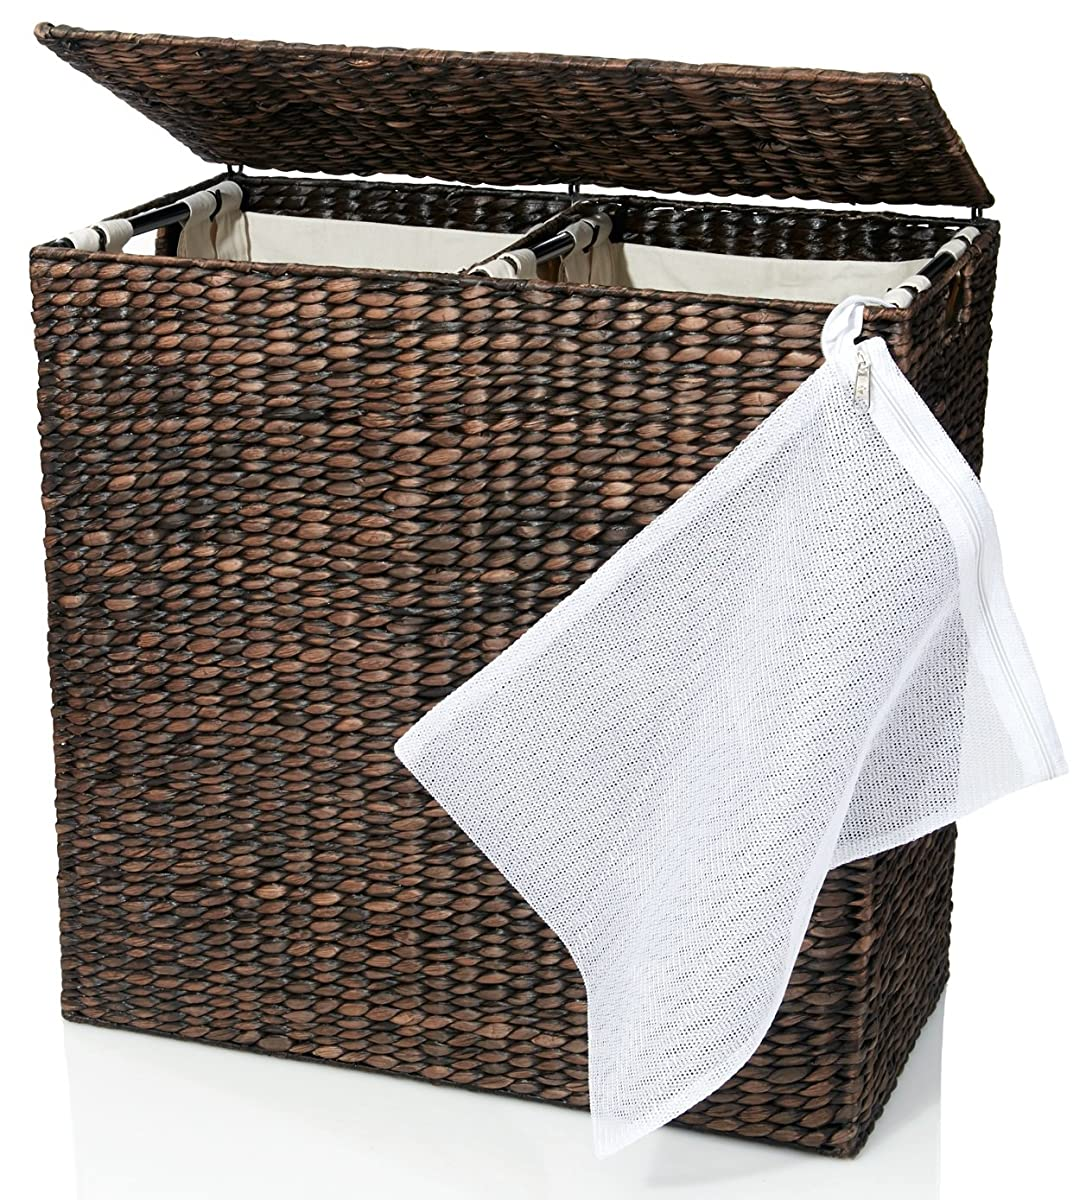 Luxury Laundry Hamper Designer Wicker Laundry Hamper With Divided Interior And